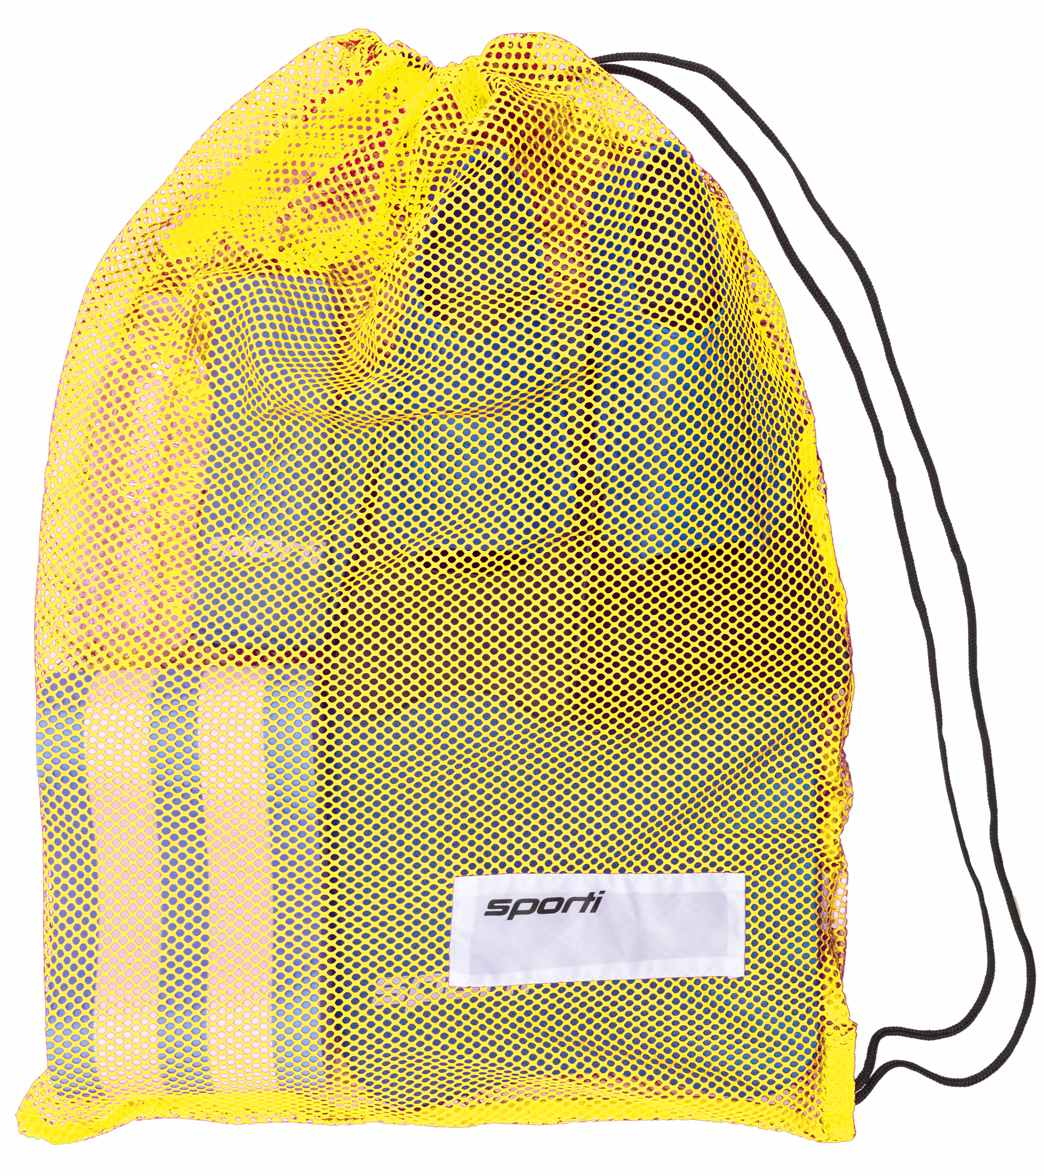 Sporti Mesh Bag at SwimOutlet.com